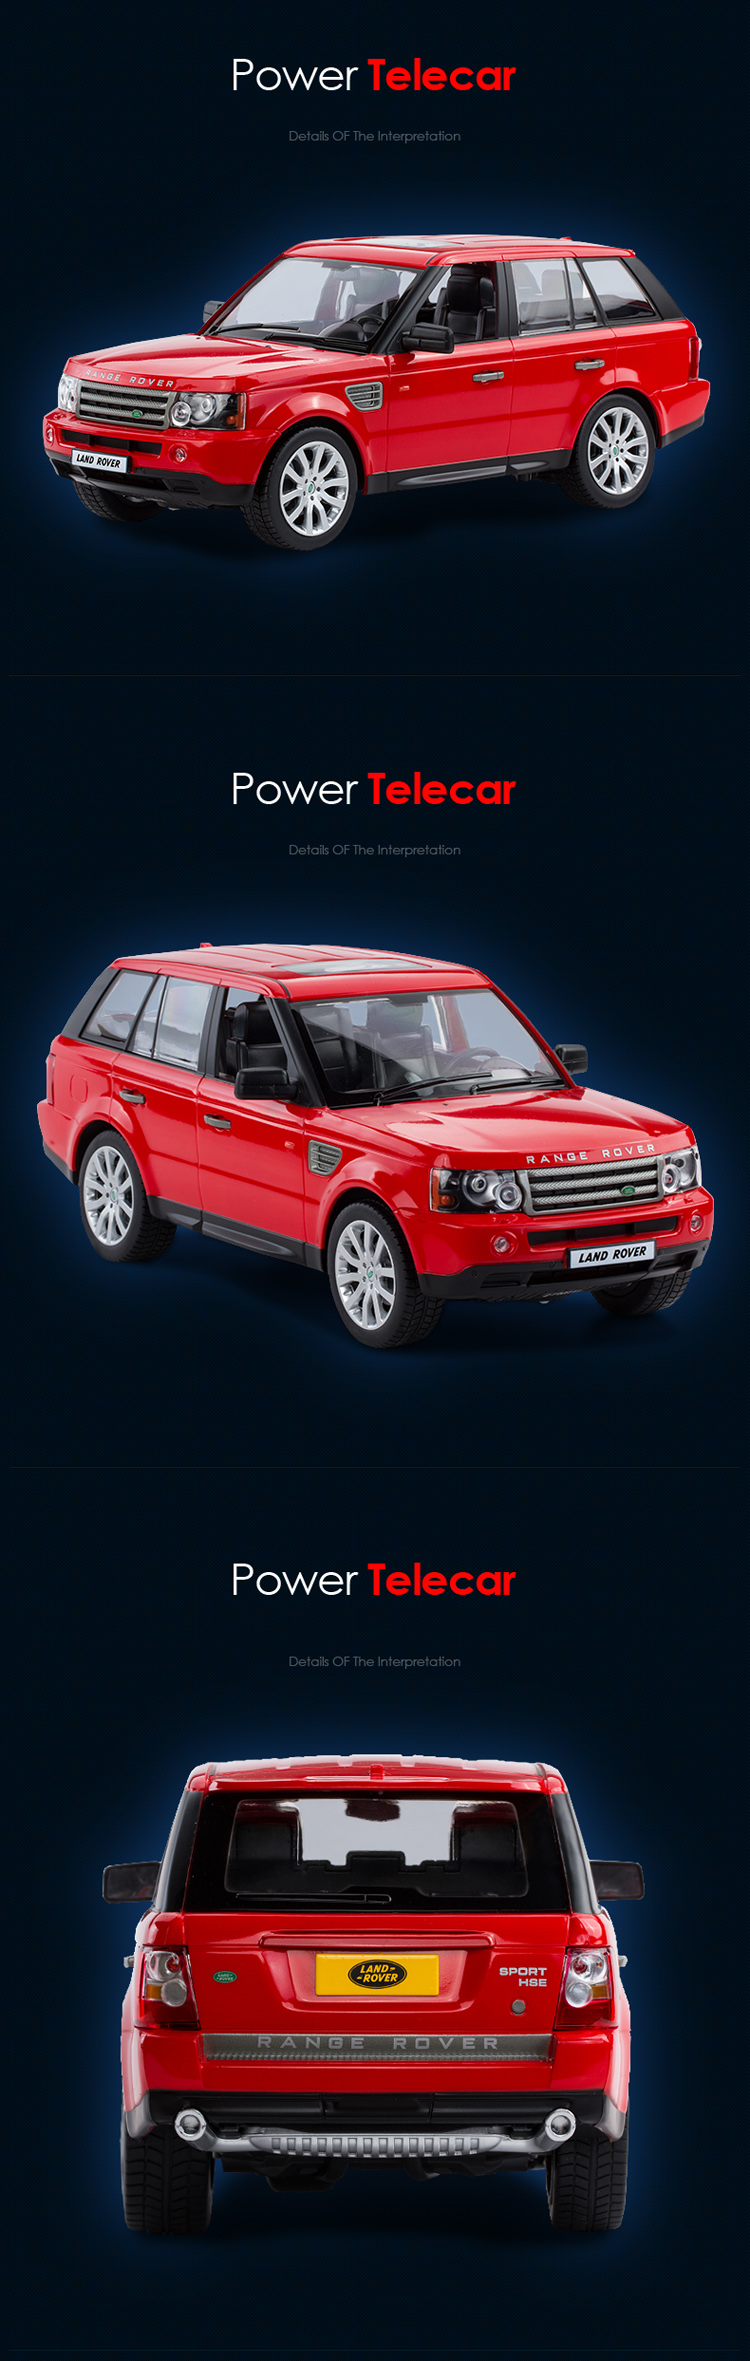 LAND ROVER 1:14 ABB spray painting model car RASTAR battery powered remote control rc car